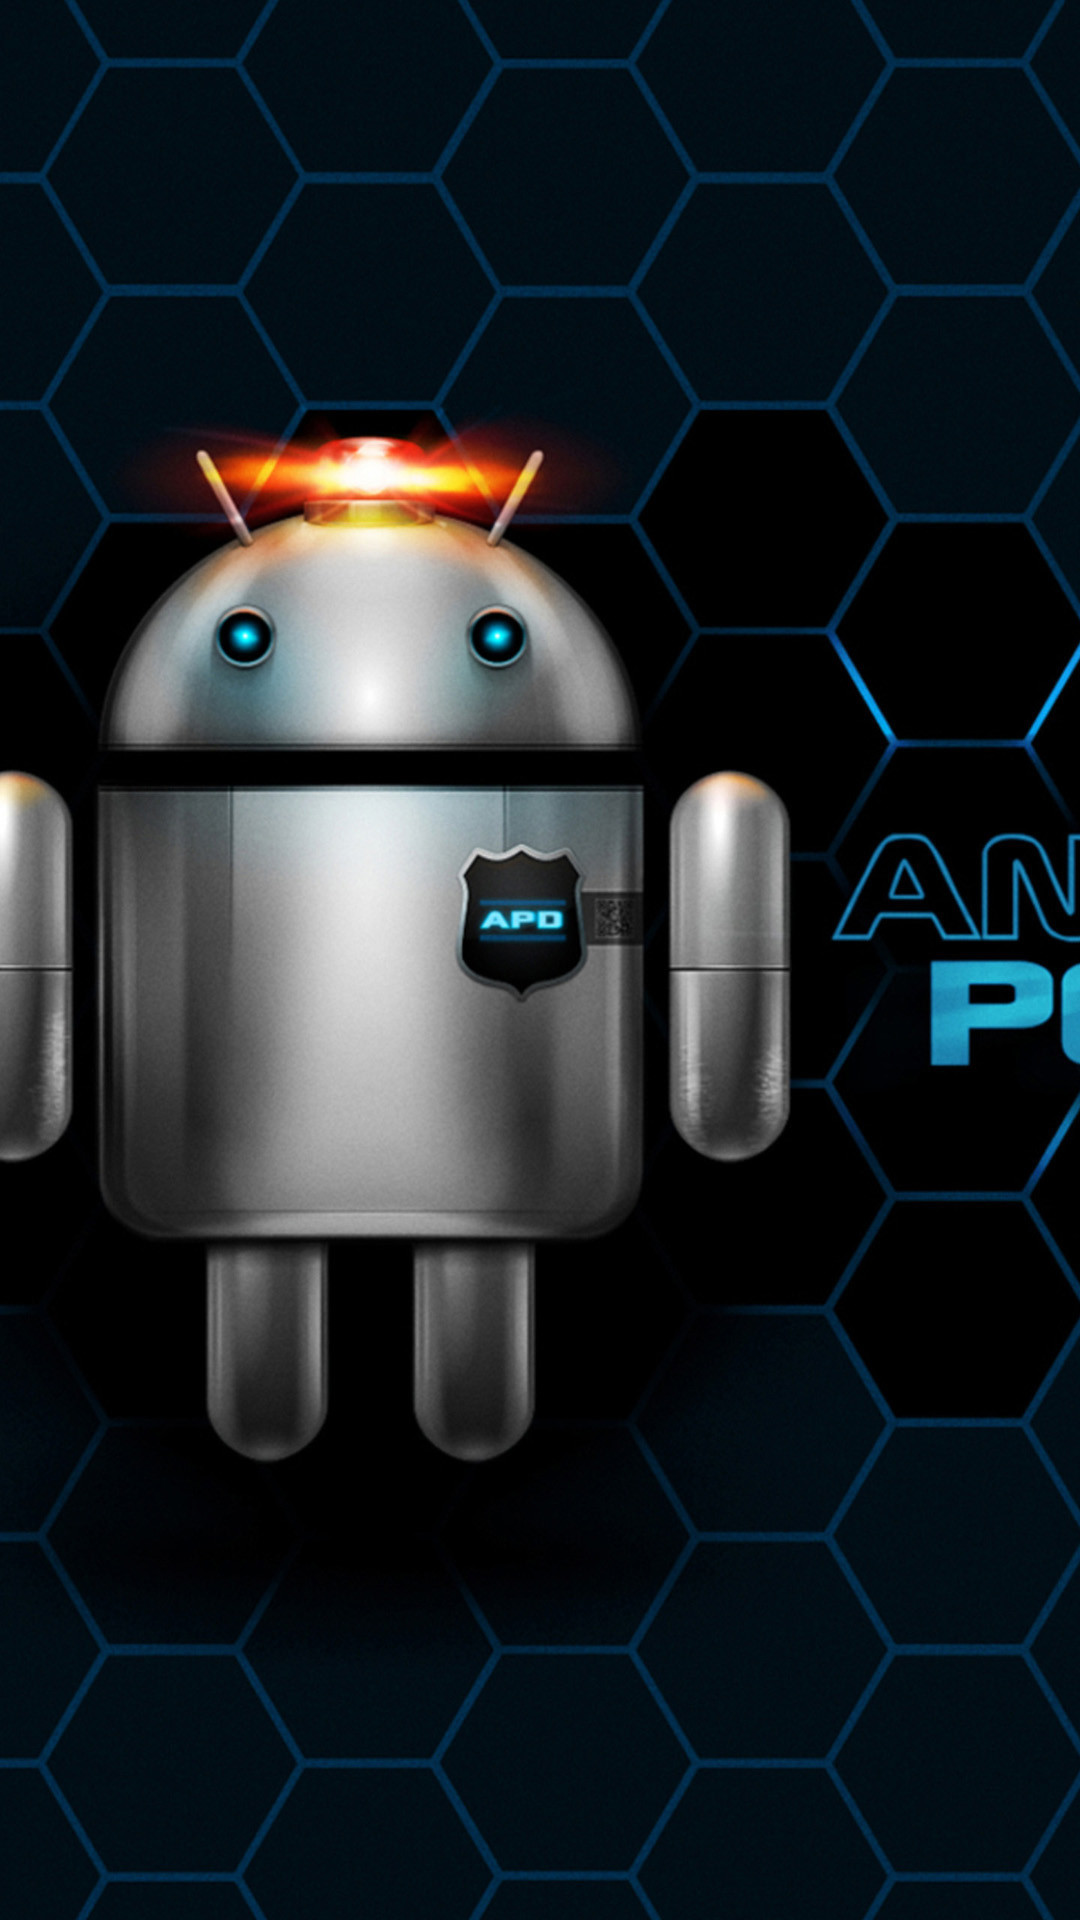 Wallpaper 4k For Android Android Police 2946679 Hd Wallpaper Backgrounds Download